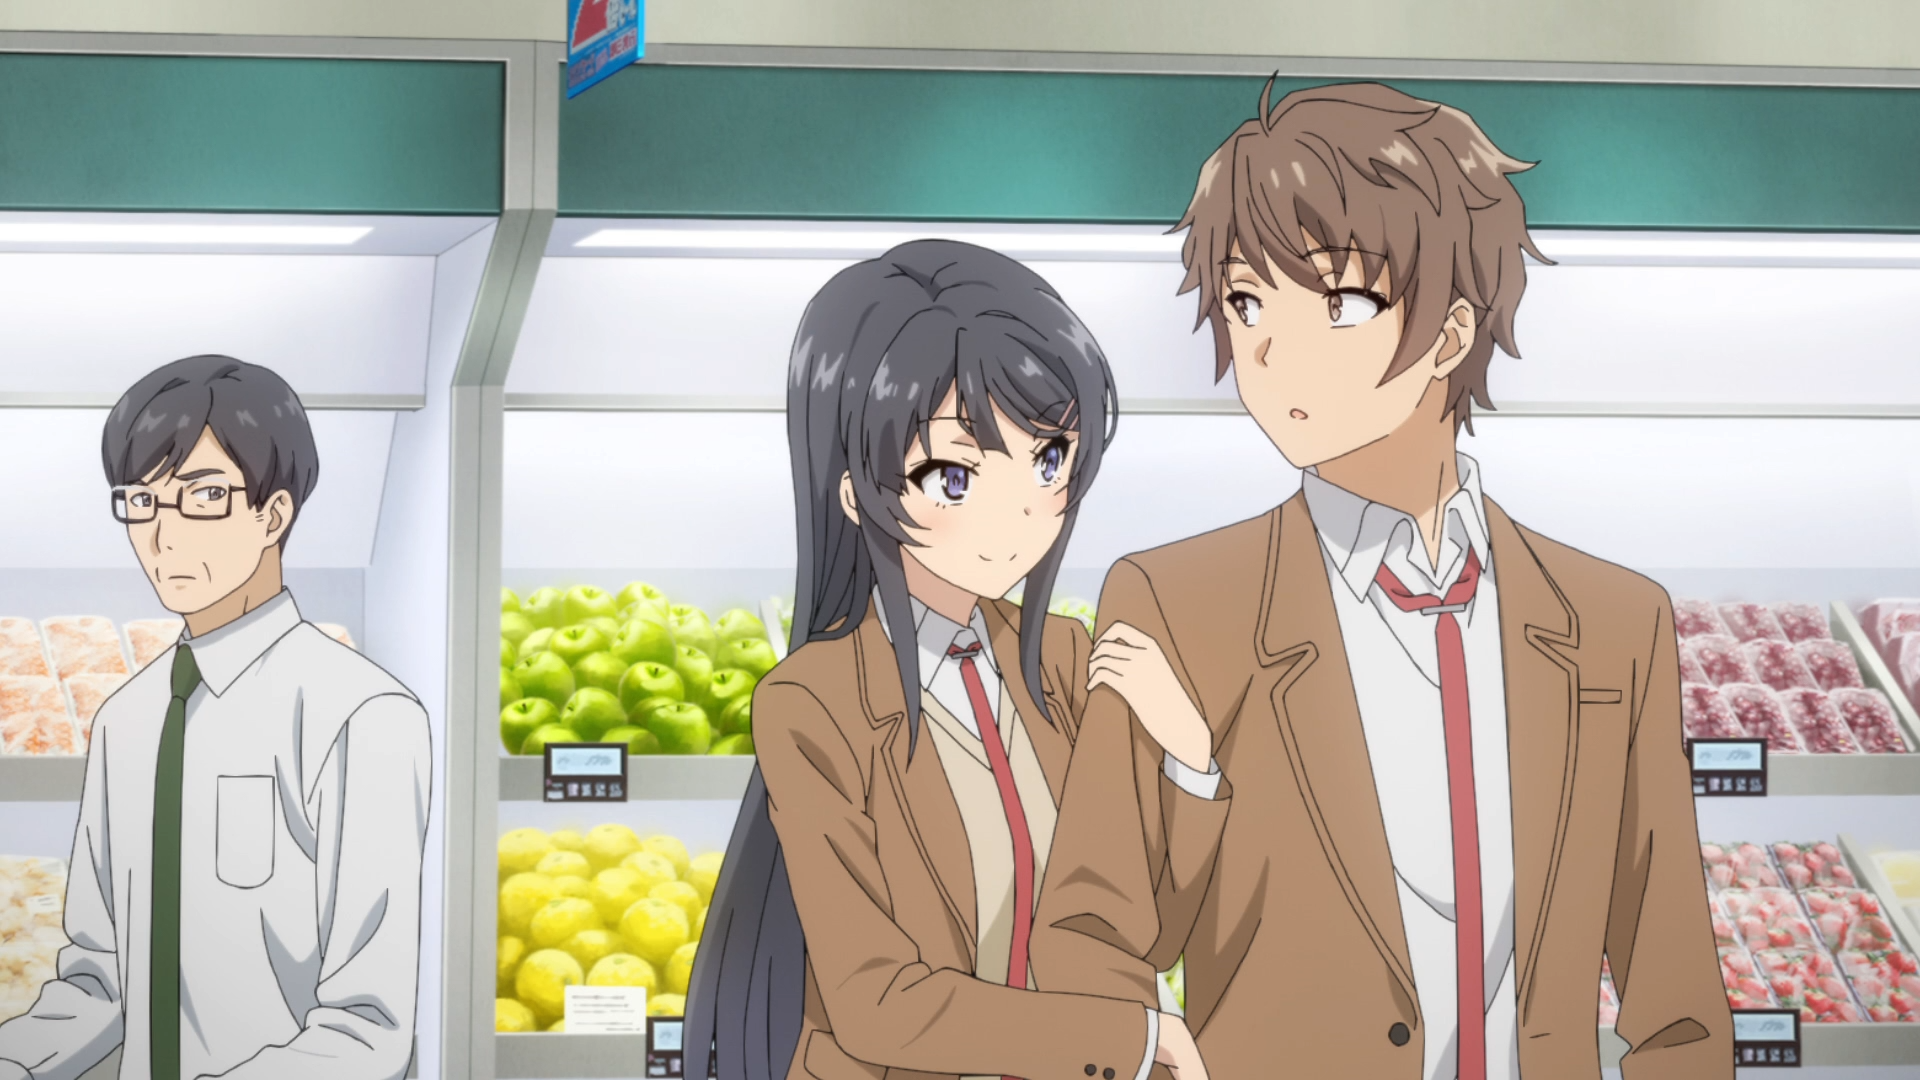 2 - Rascal Does Not Dream of Bunny Girl Senpai